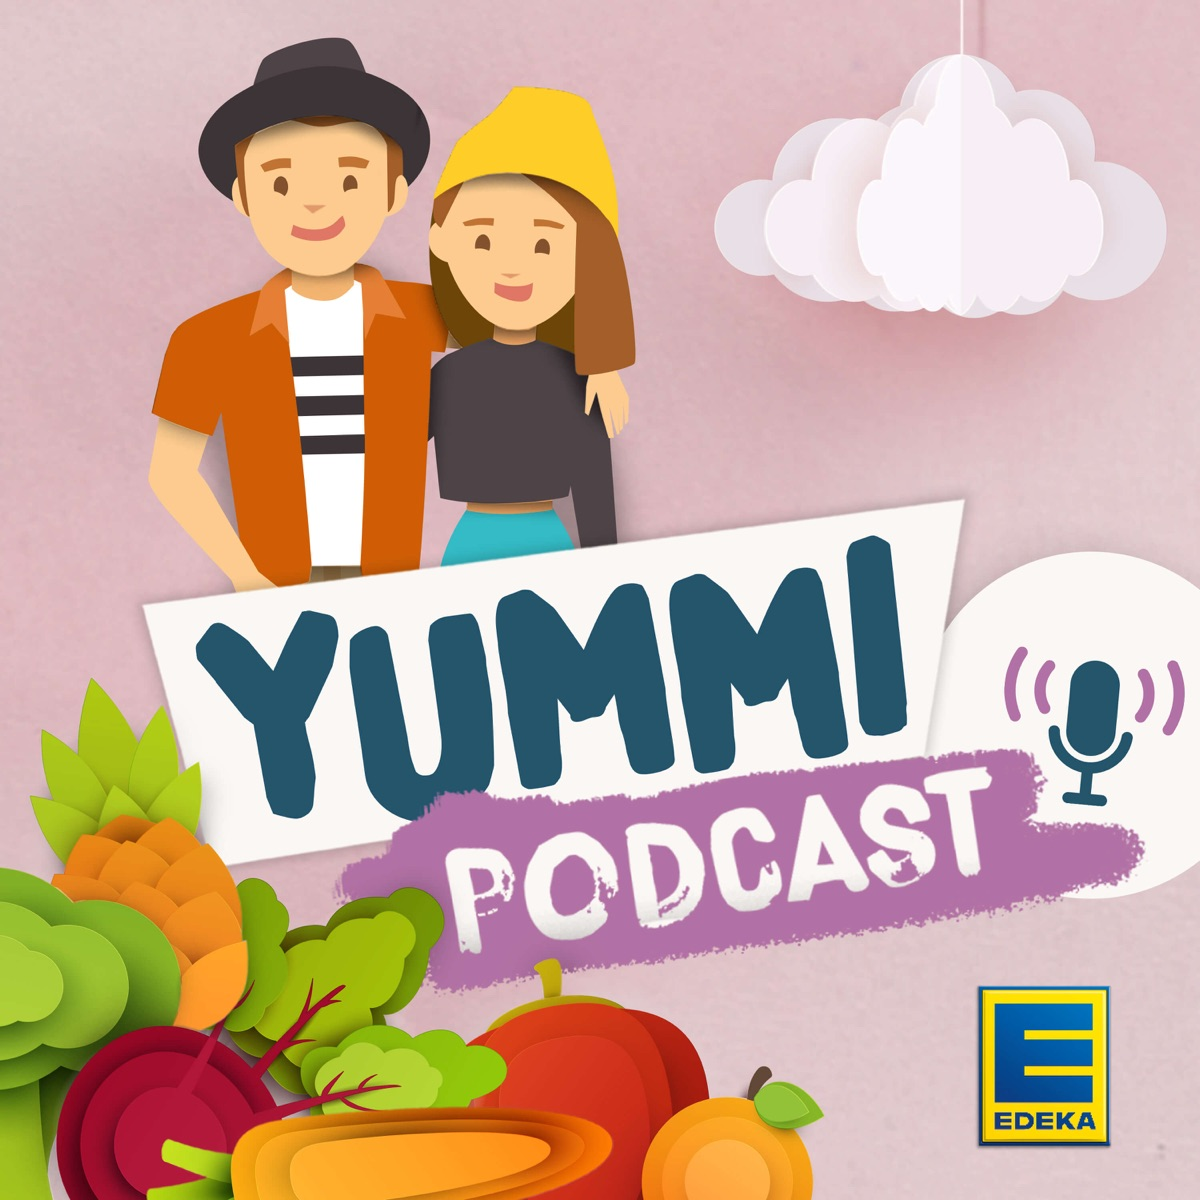 YUMMI Podcast - Bald geht's los